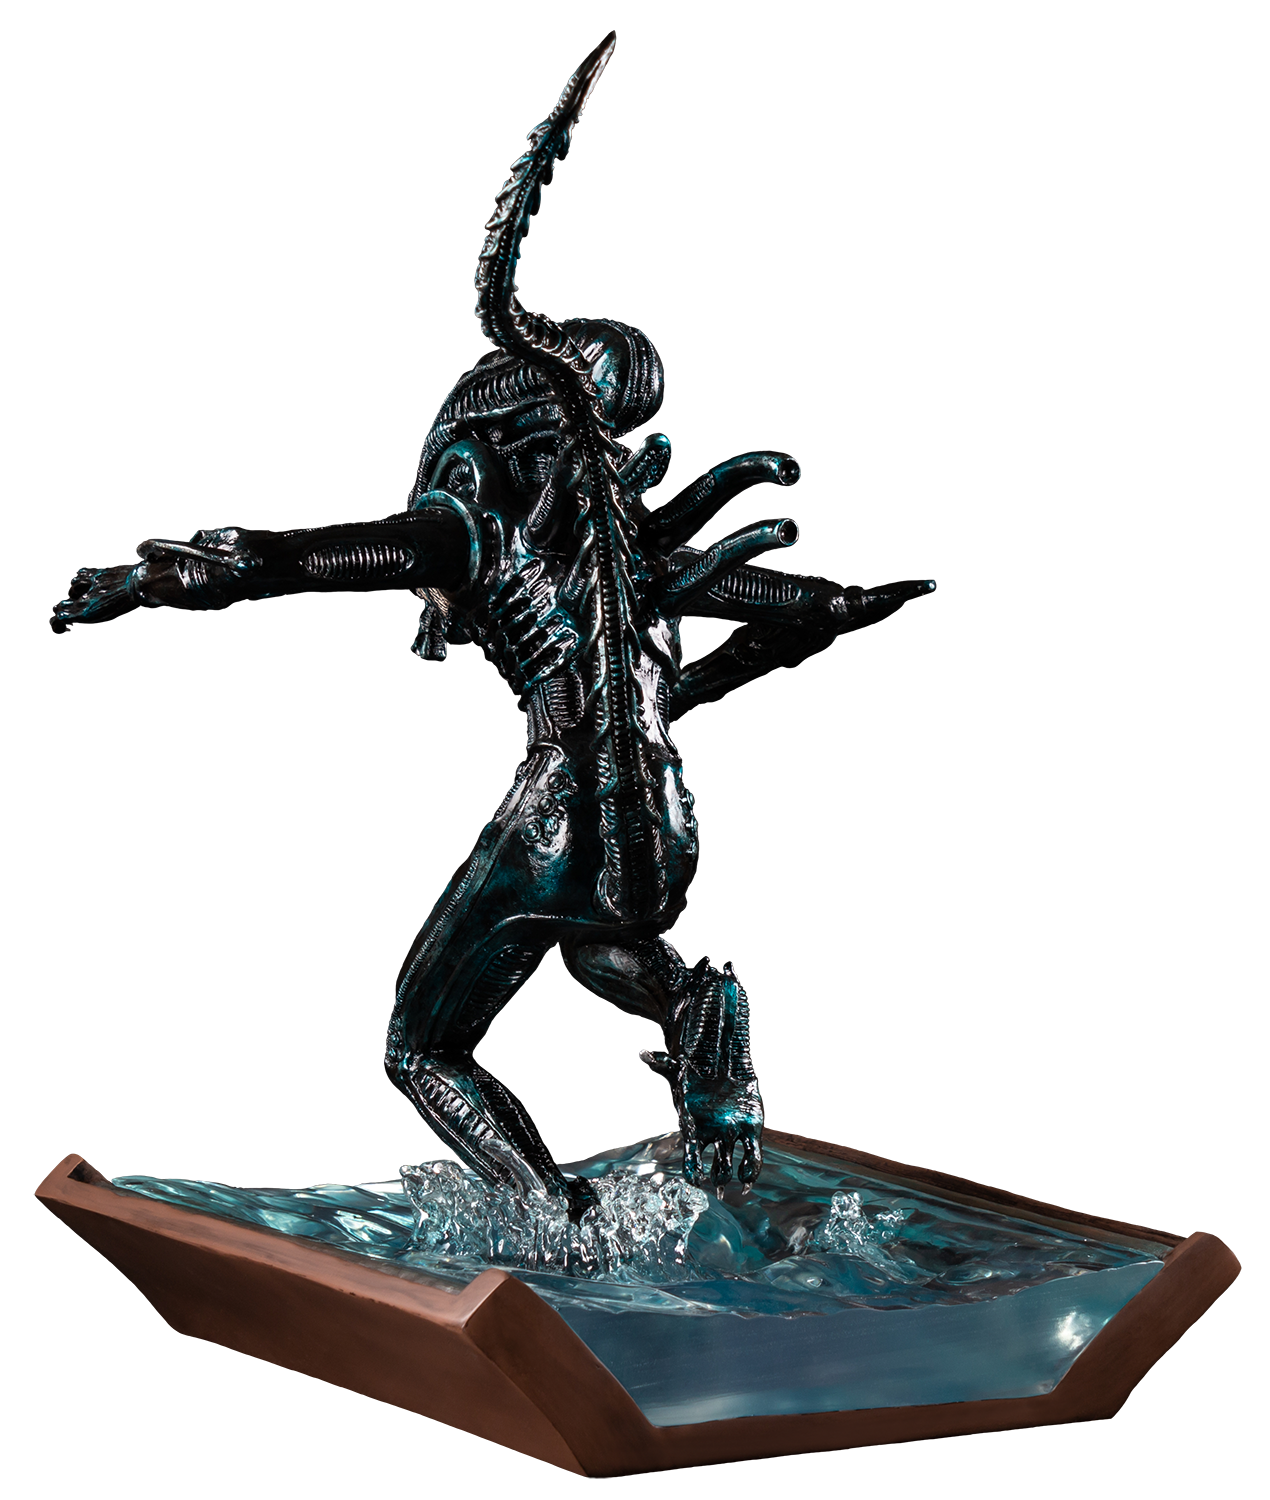 IKO1124-Alien-in-Water-Statue-New-Paint-5-130.png